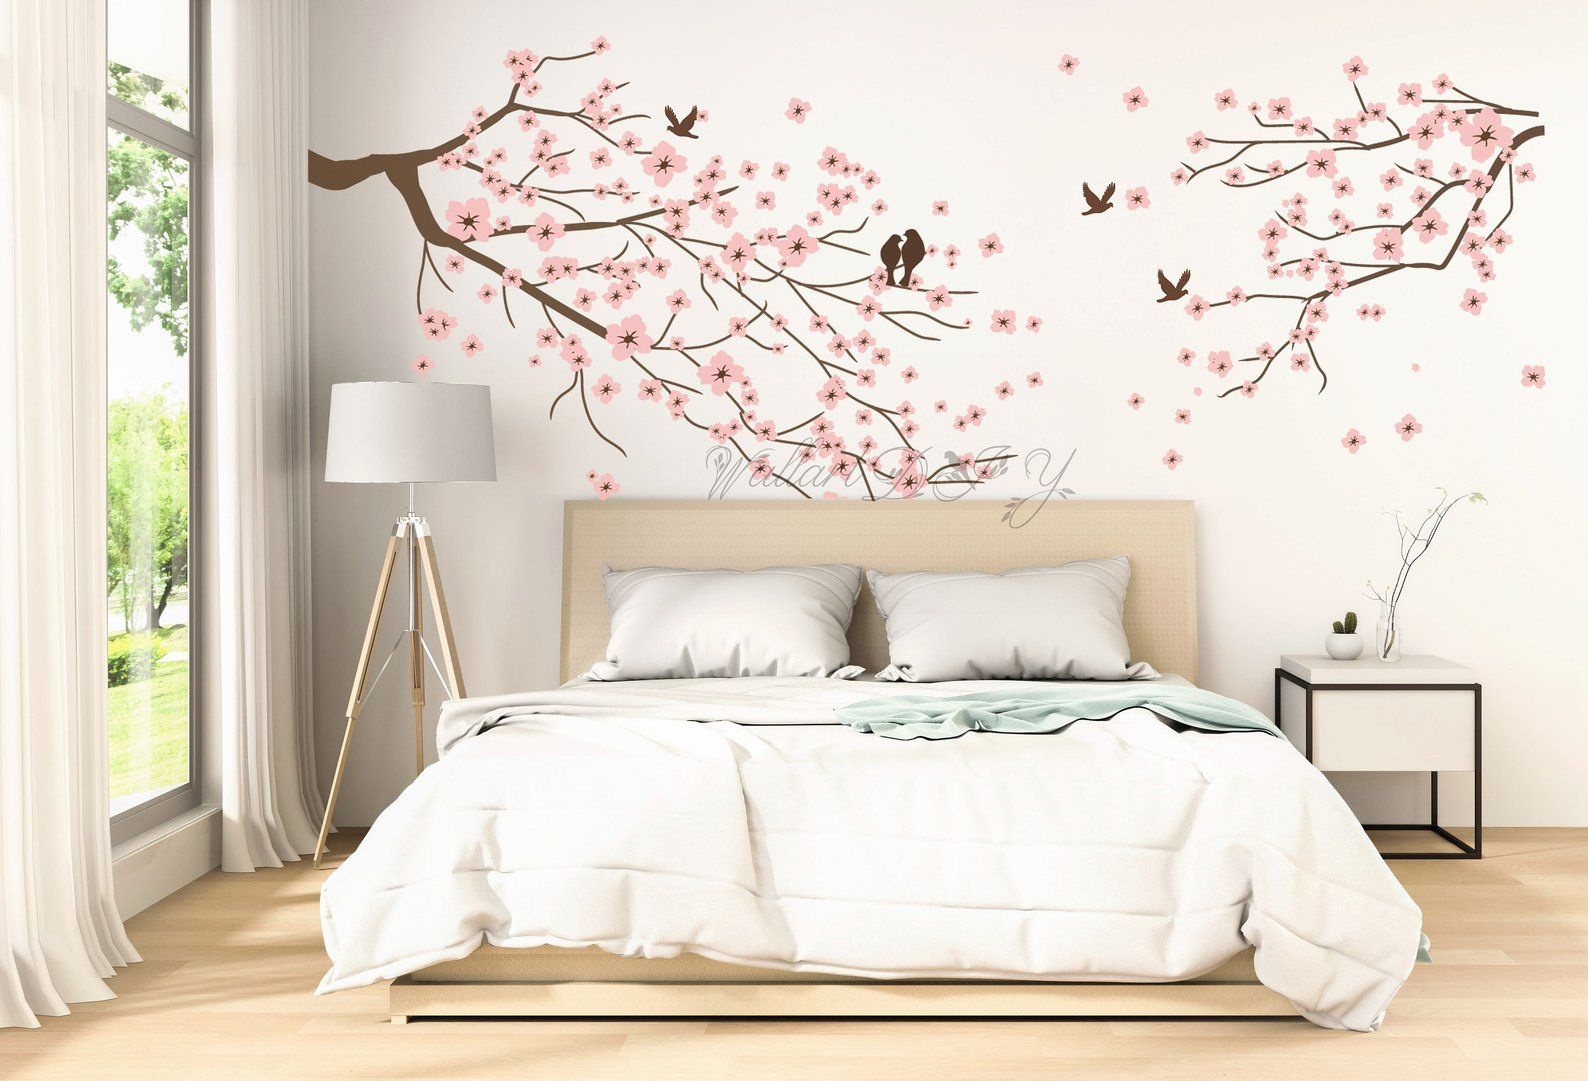 Large Cherry Blossom Wall Decals Tree